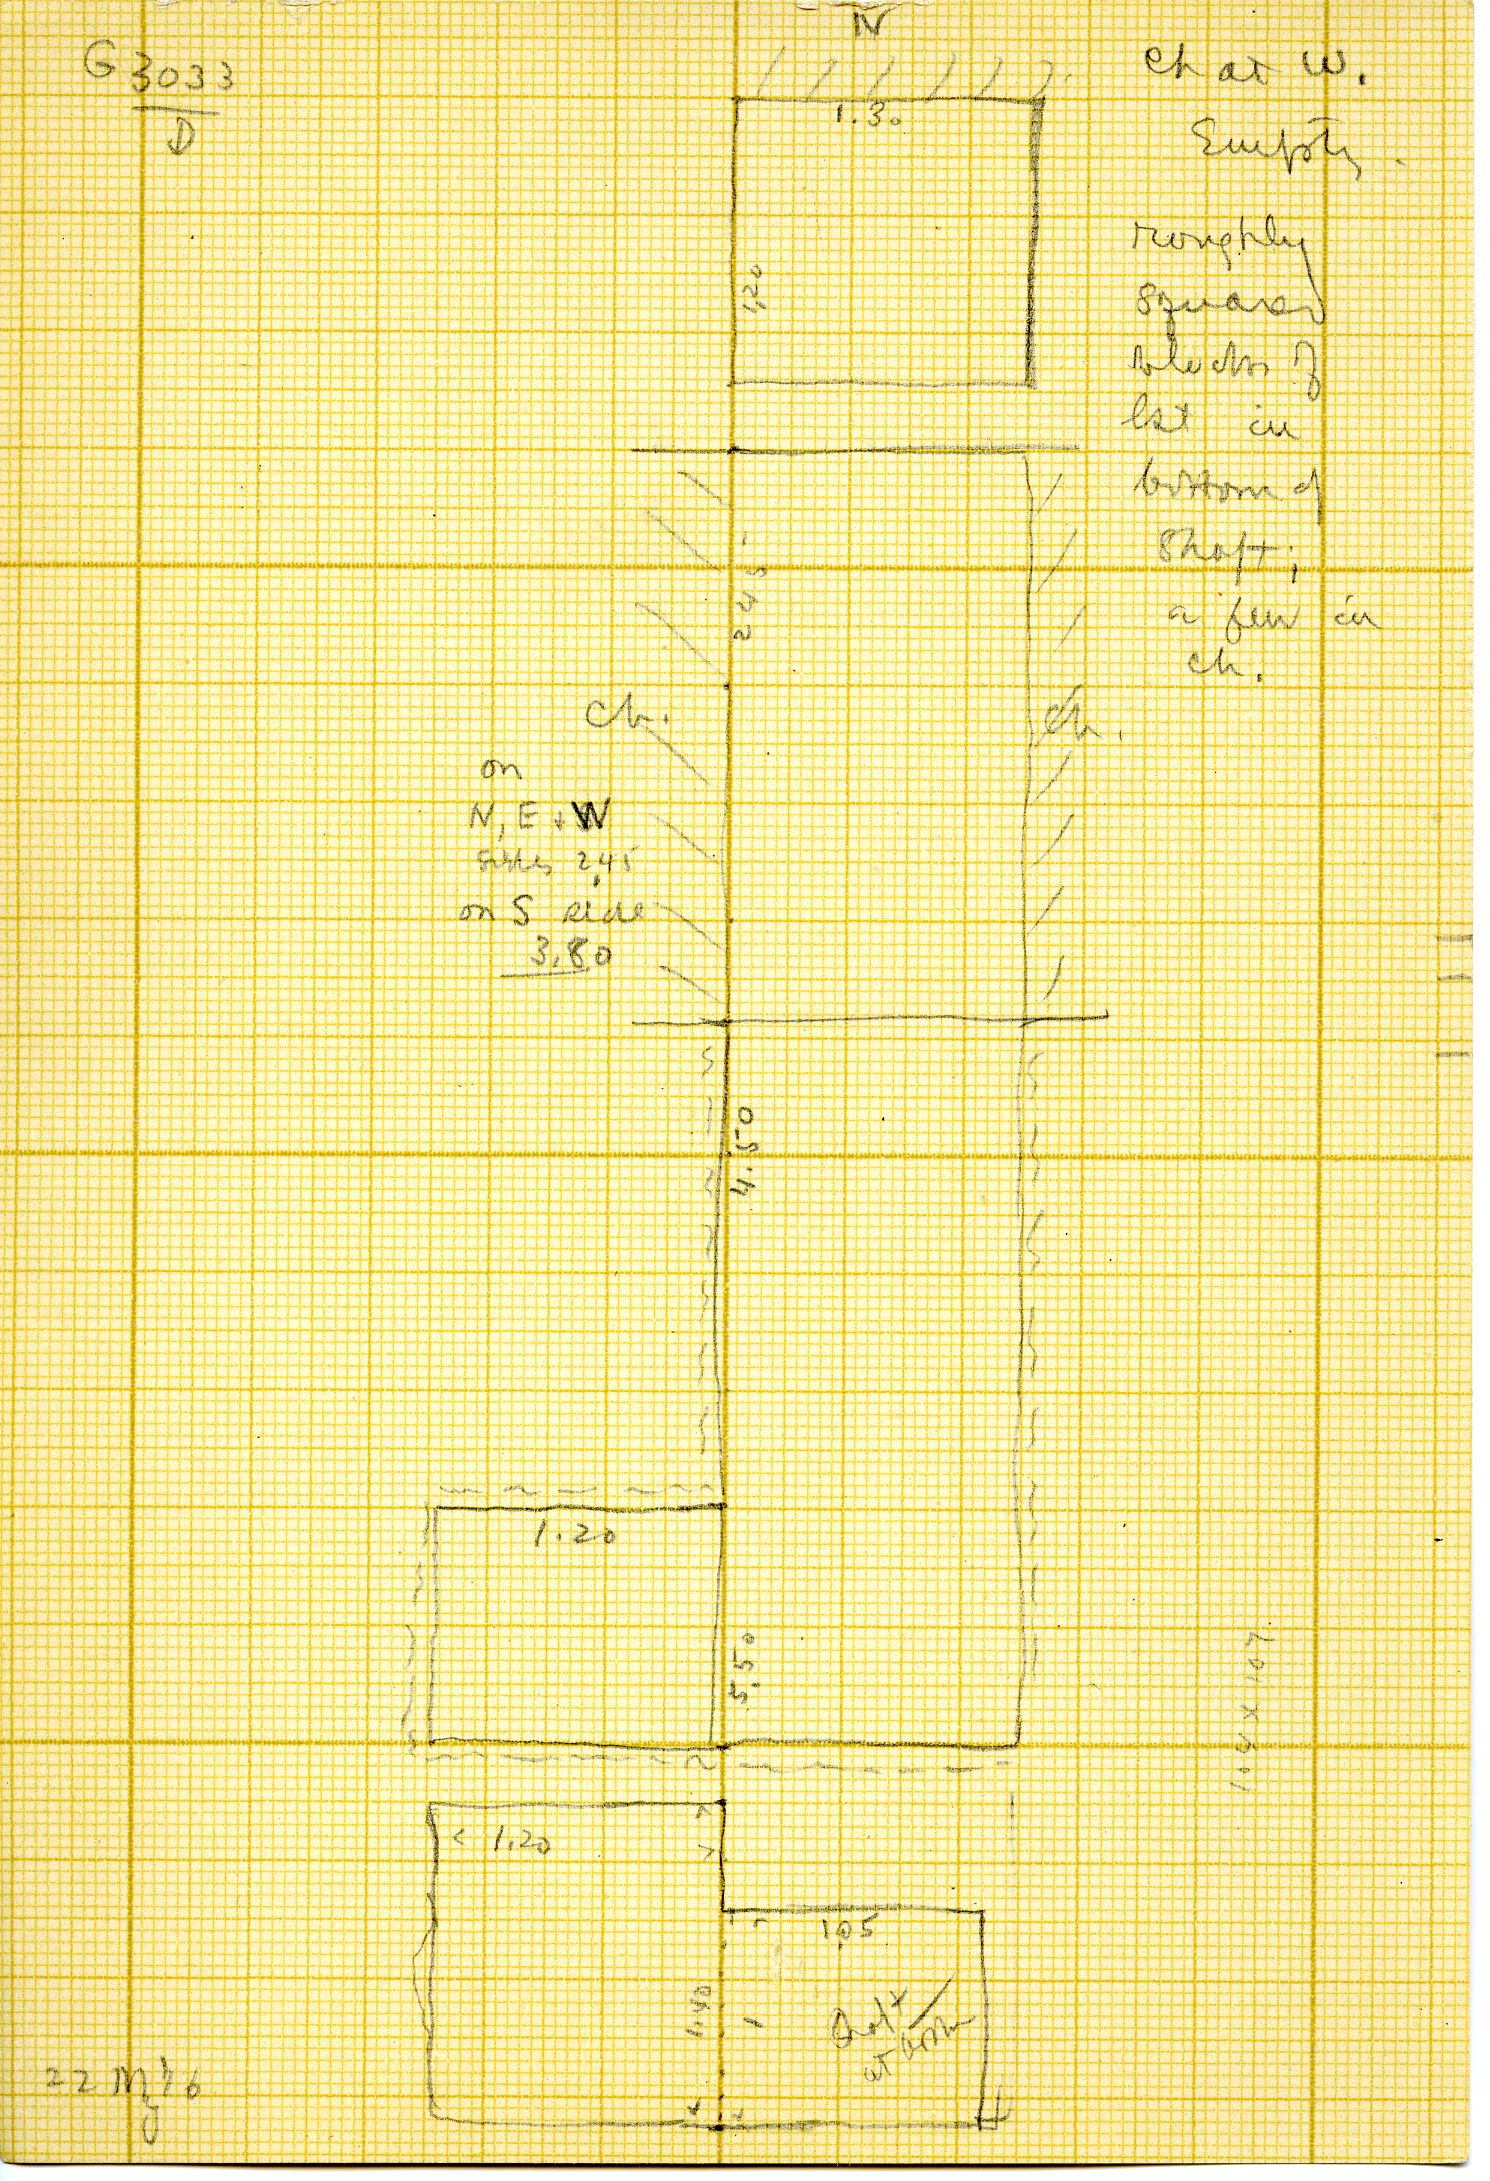 Maps and plans: G 3033, Shaft D